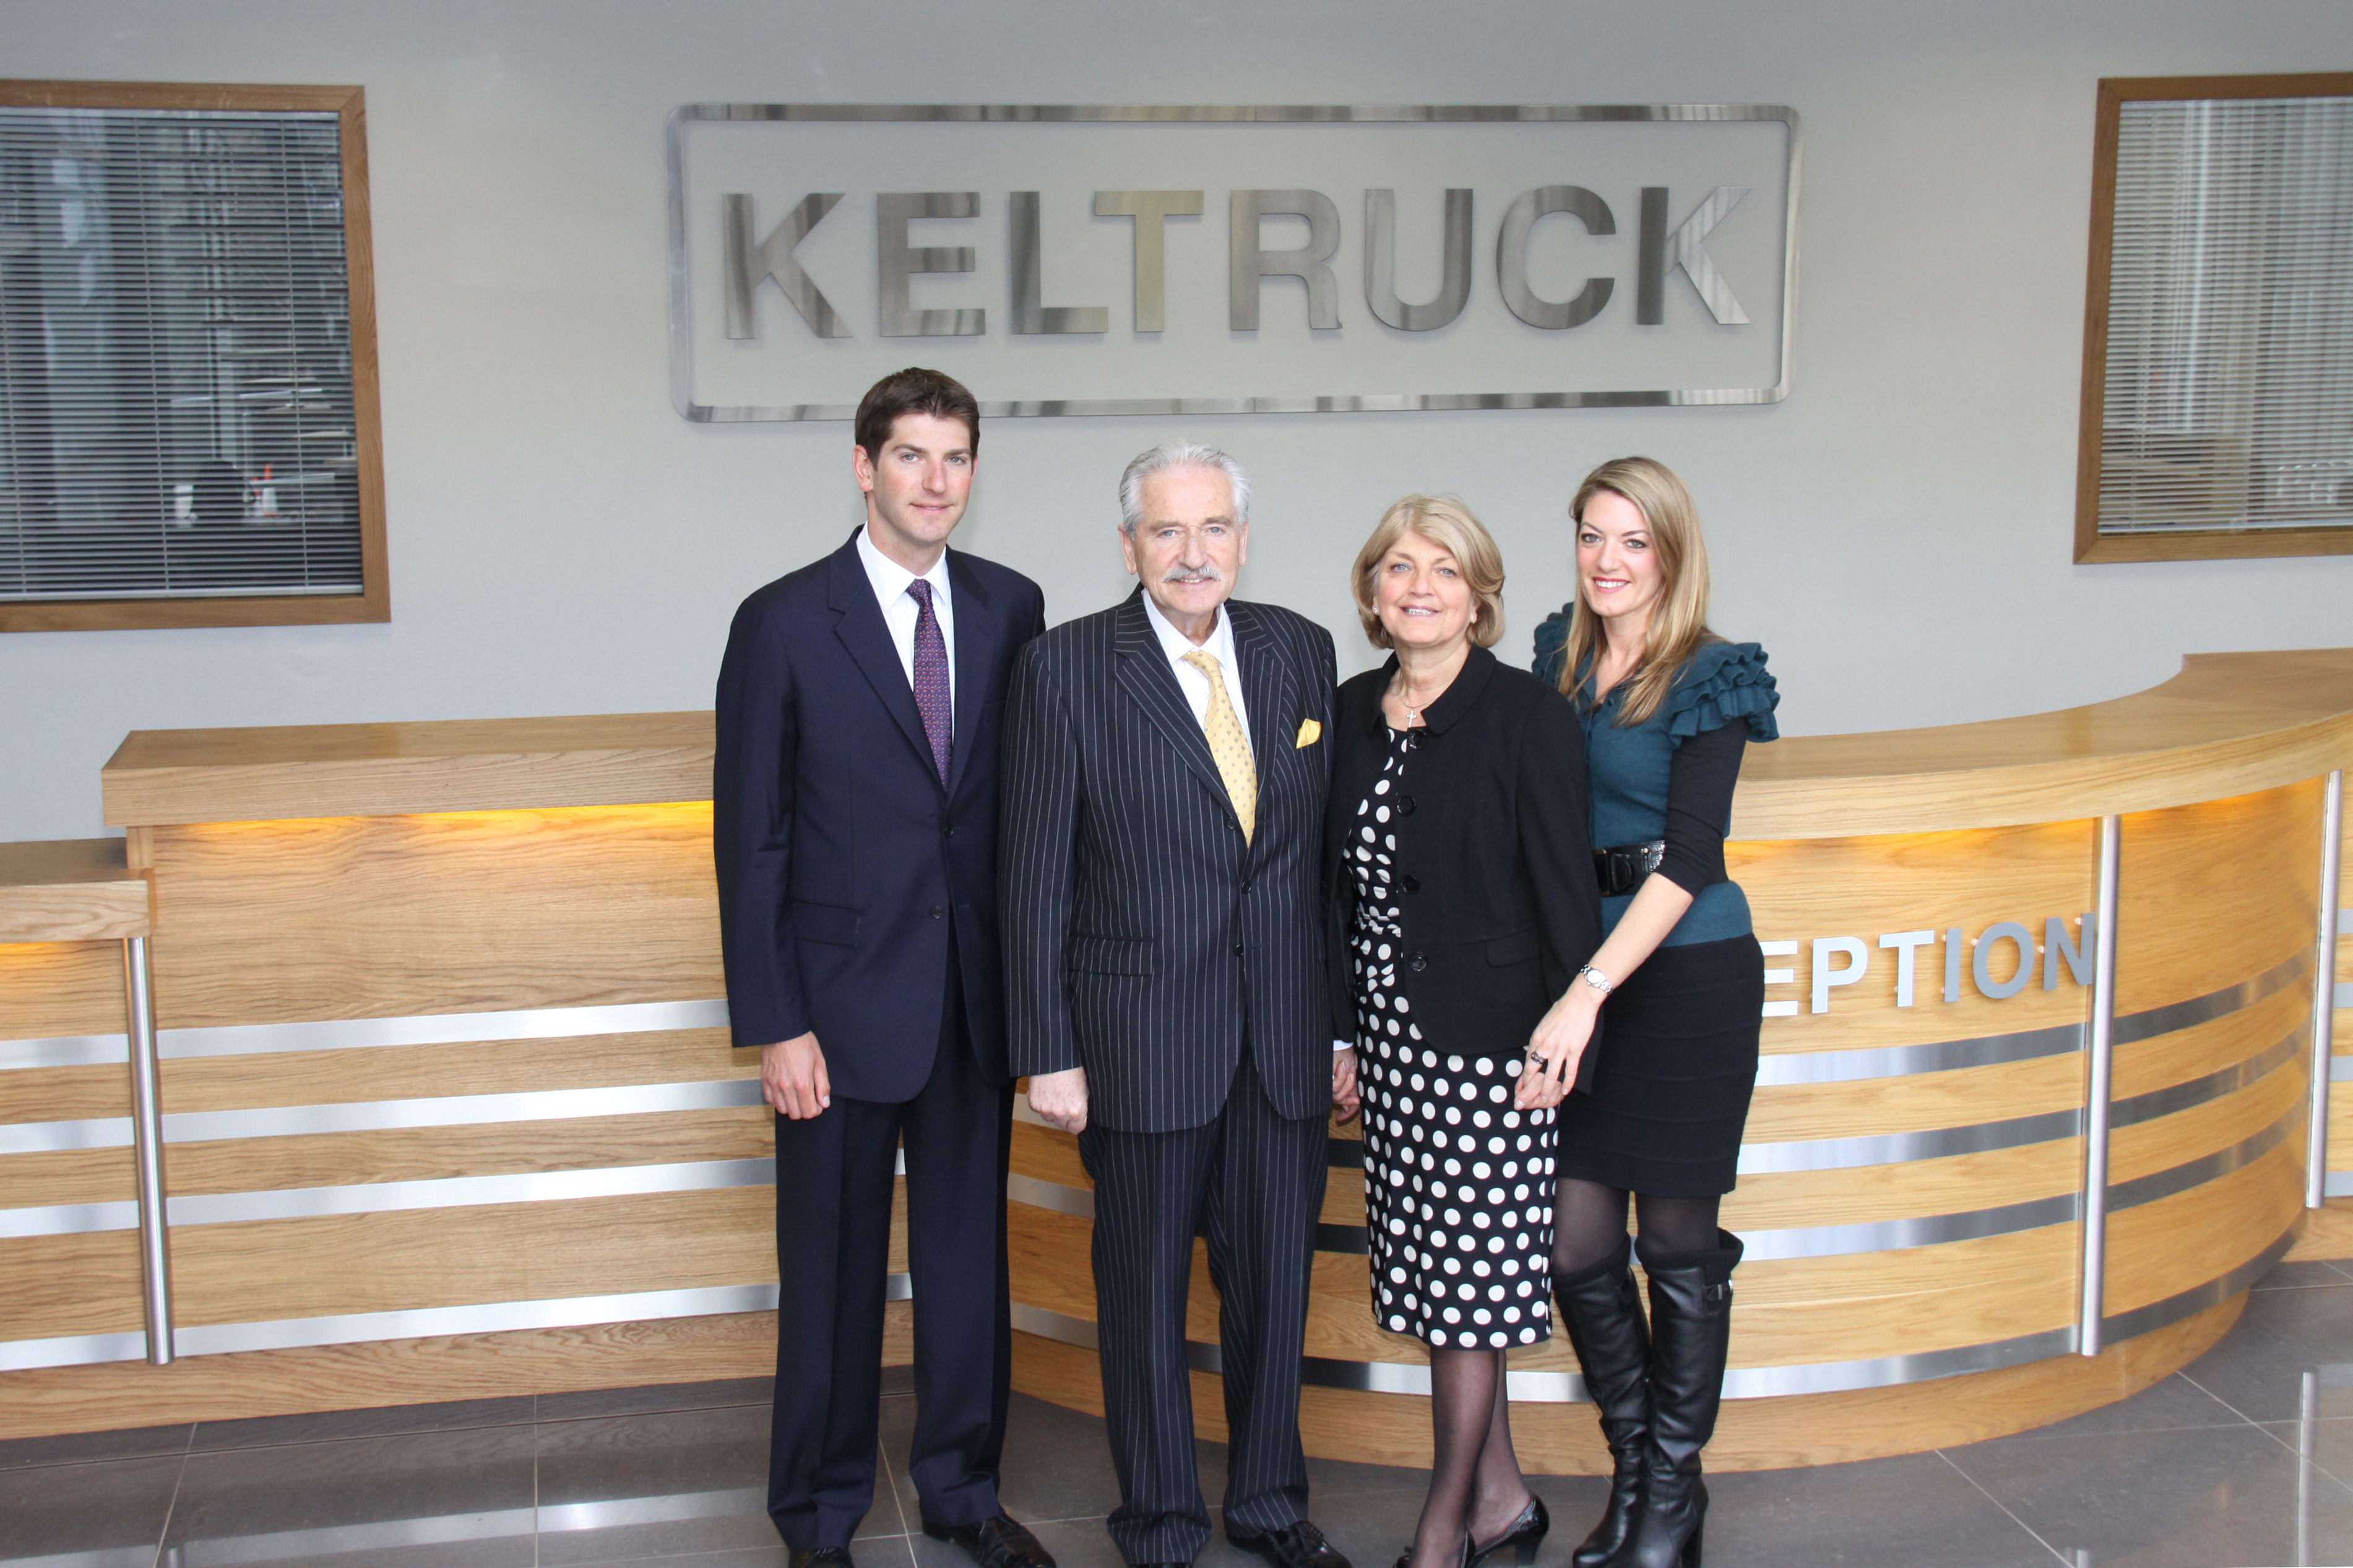 Chris Kelly & family at Keltruck's 30th anniversary celebration